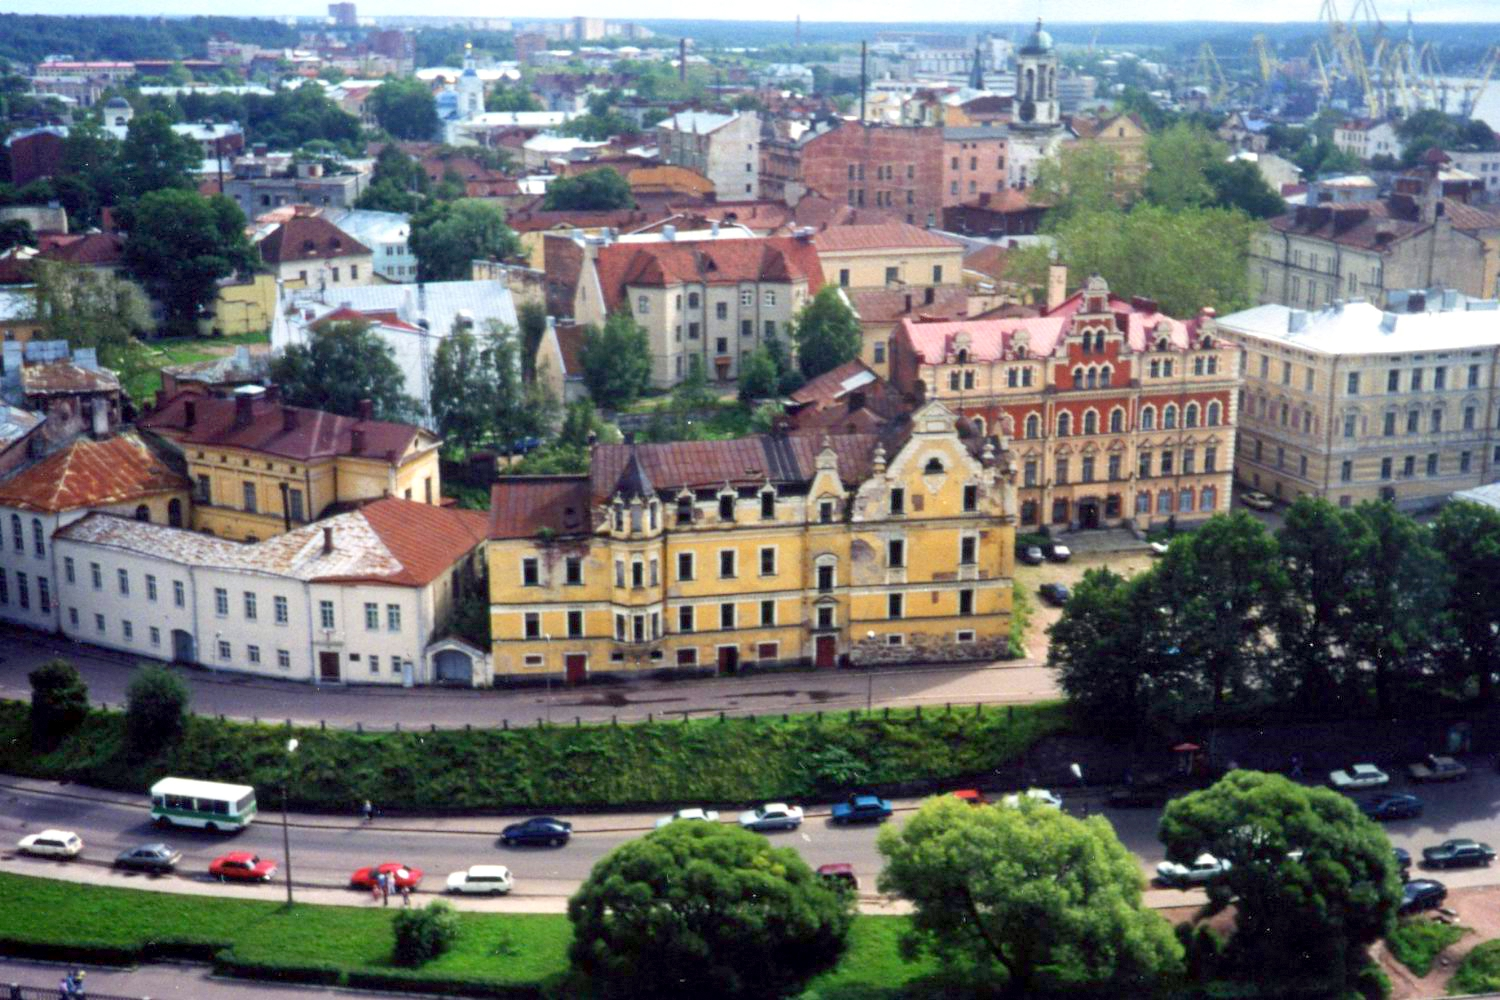 Vyborg Russia  City new picture : Original file  1,500 × 1,000 pixels, file size: 979 KB, MIME type ...